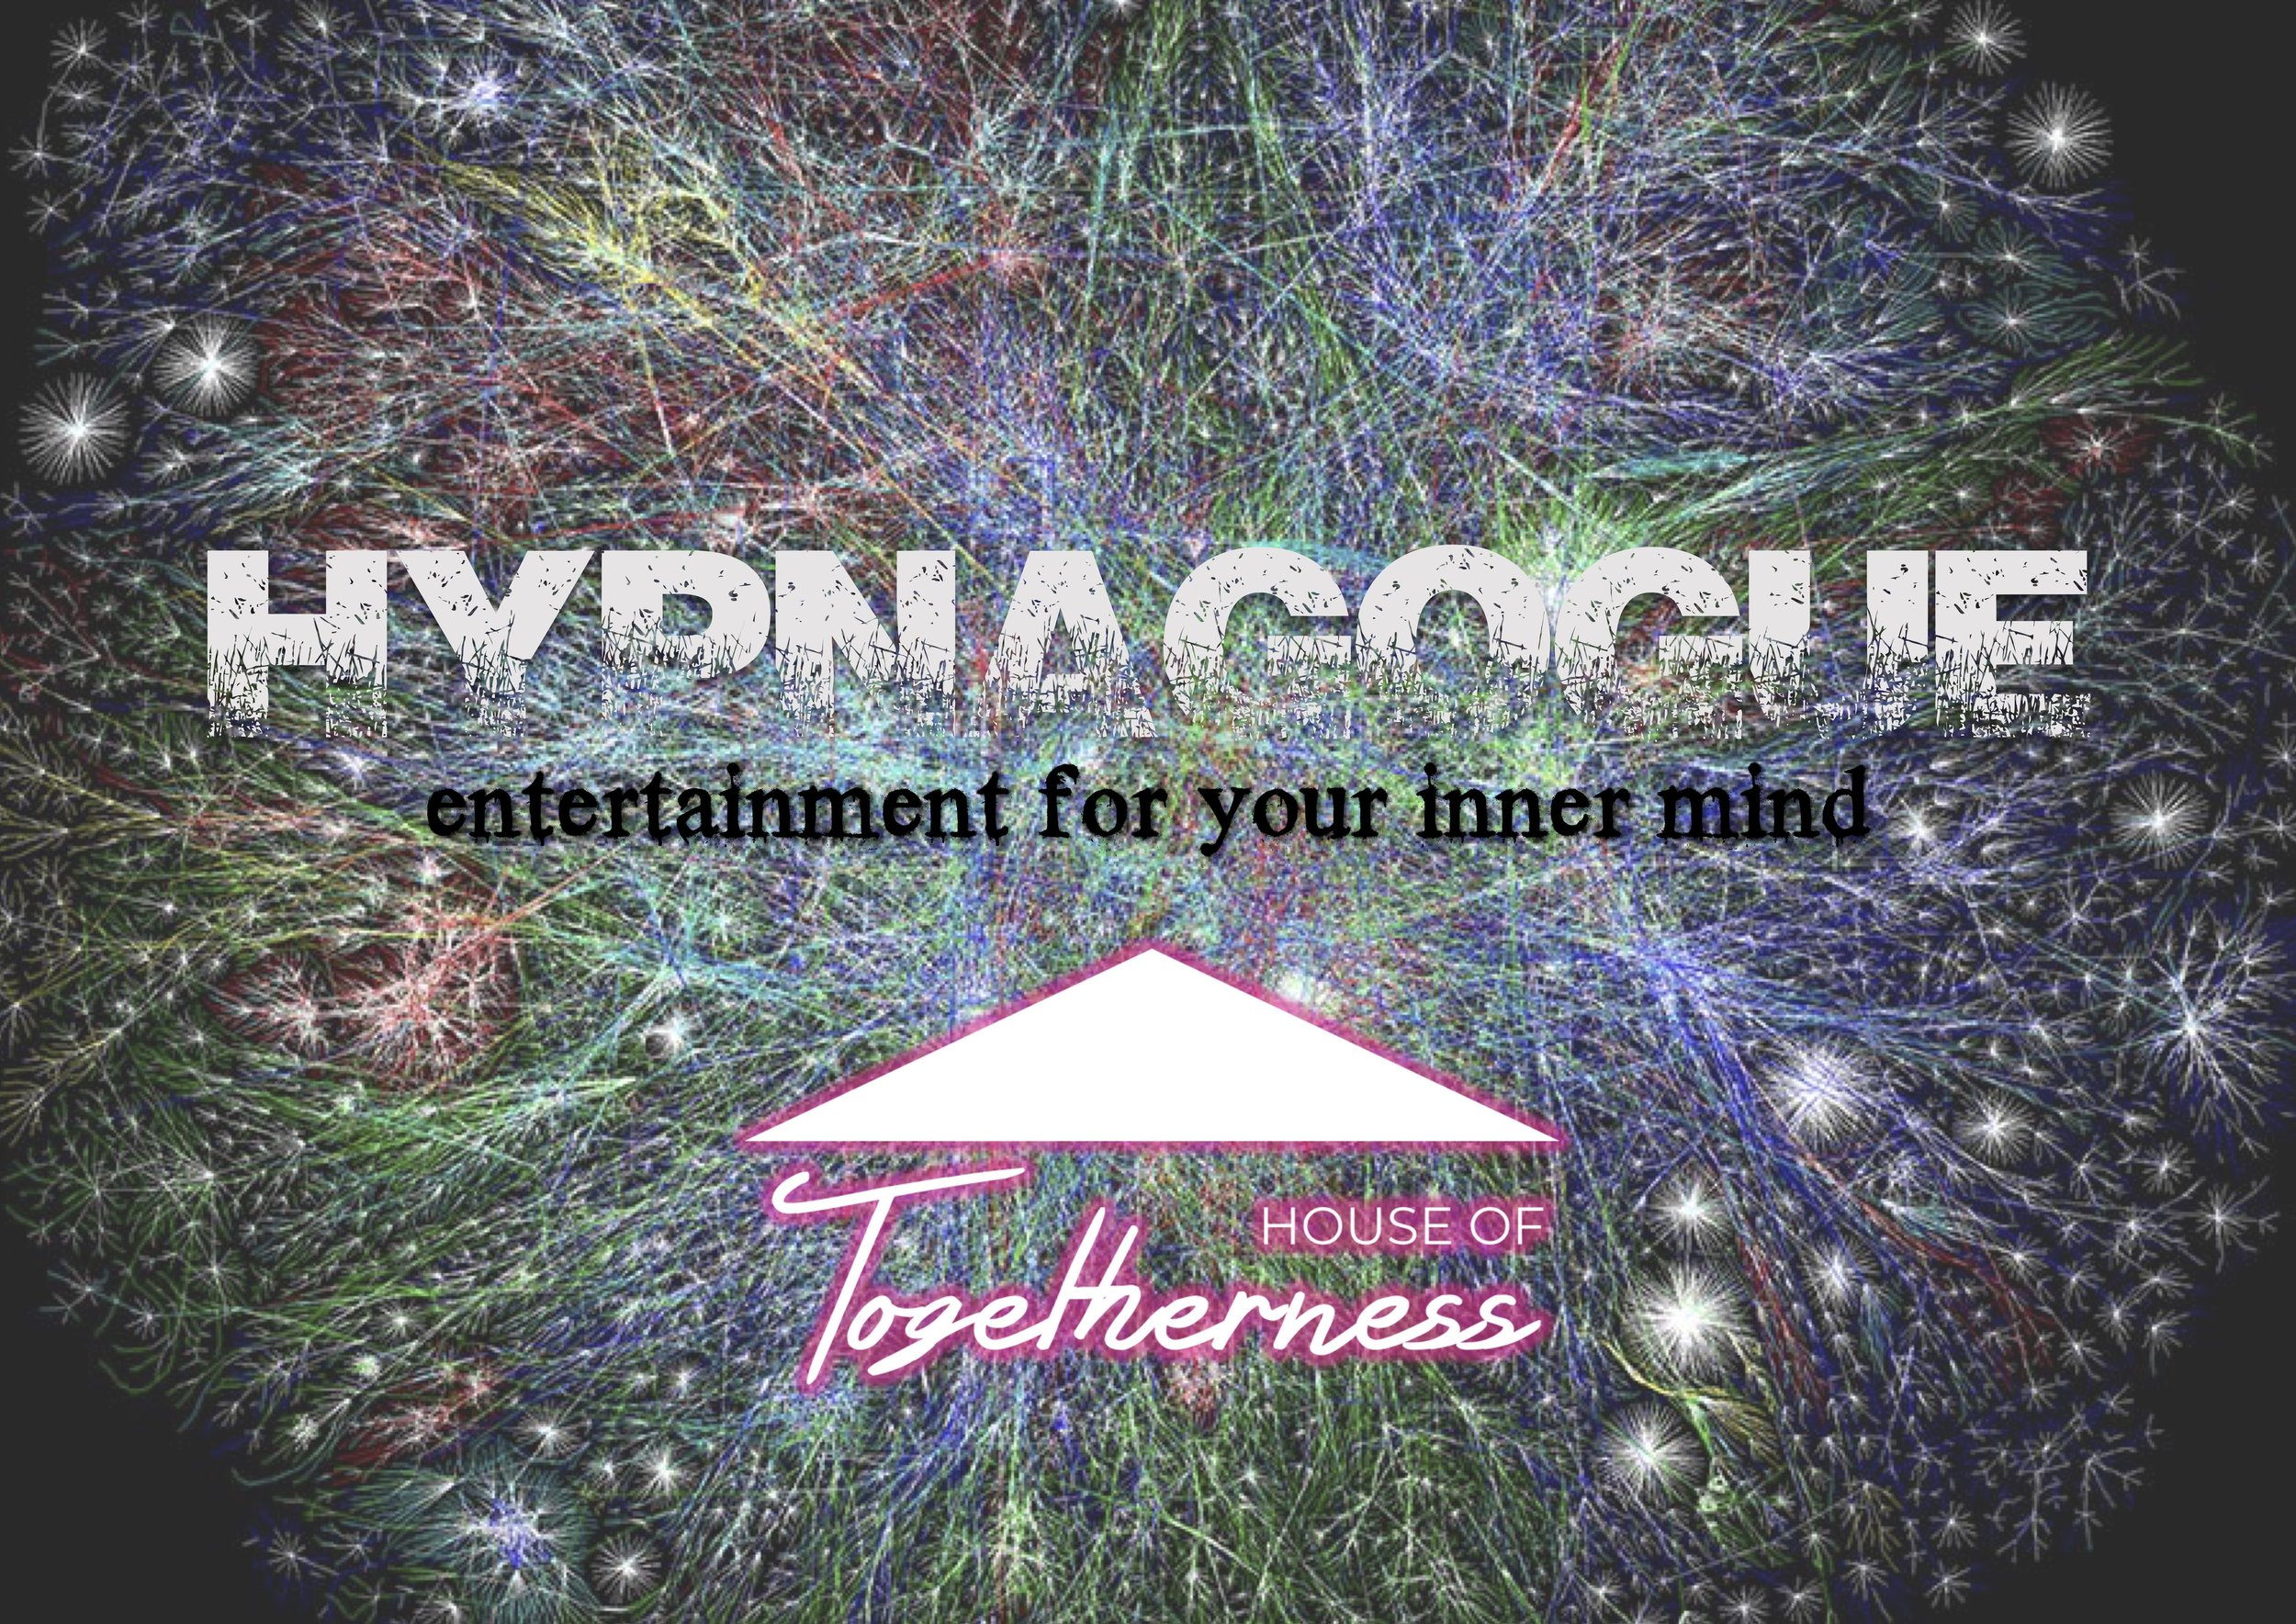 Hypnagogue (togetherness image).jpg